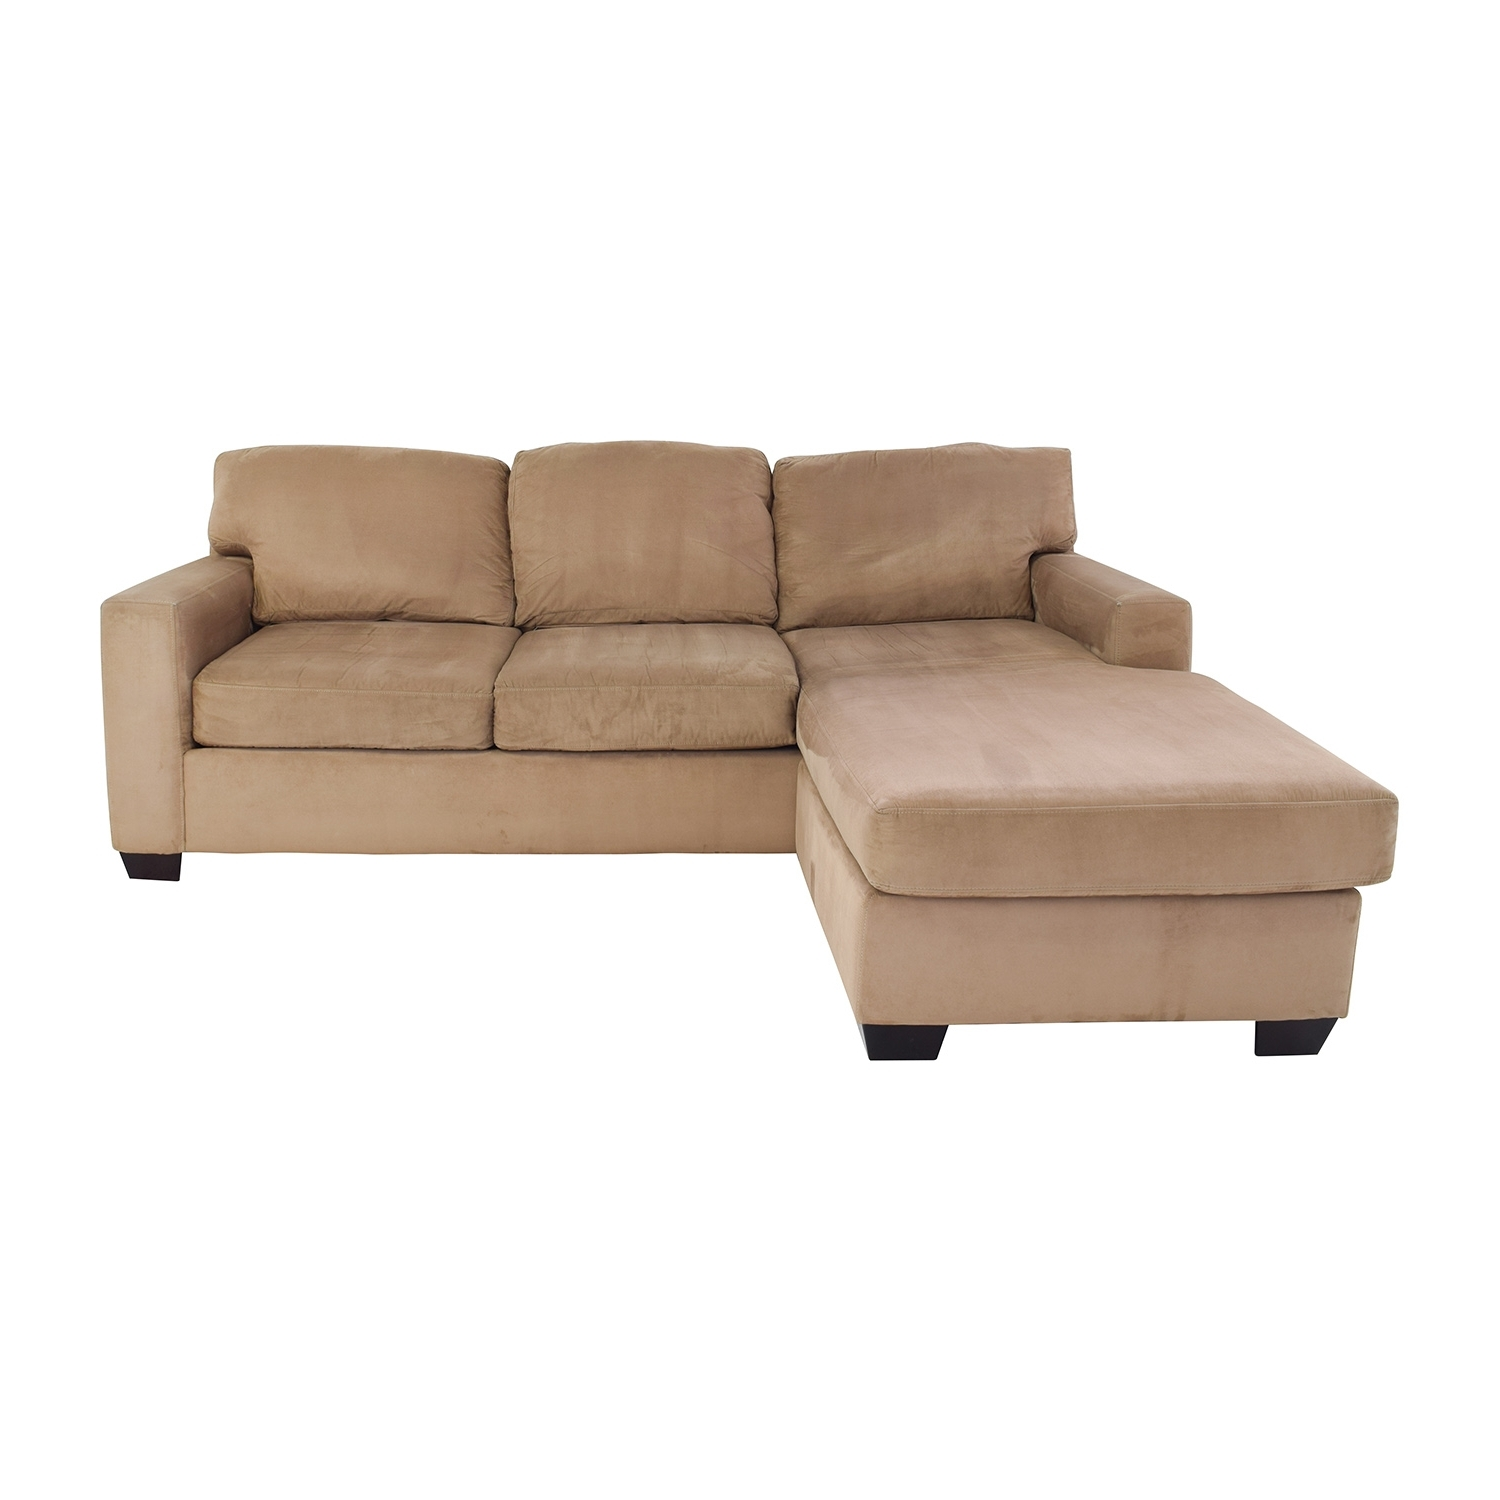 [%75% Off – Max Home Max Home Tan Sectional Chaise Sofa / Sofas Inside Popular Chaise Sofas|Chaise Sofas Regarding Fashionable 75% Off – Max Home Max Home Tan Sectional Chaise Sofa / Sofas|Popular Chaise Sofas With Regard To 75% Off – Max Home Max Home Tan Sectional Chaise Sofa / Sofas|Well Known 75% Off – Max Home Max Home Tan Sectional Chaise Sofa / Sofas With Regard To Chaise Sofas%] (View 8 of 15)